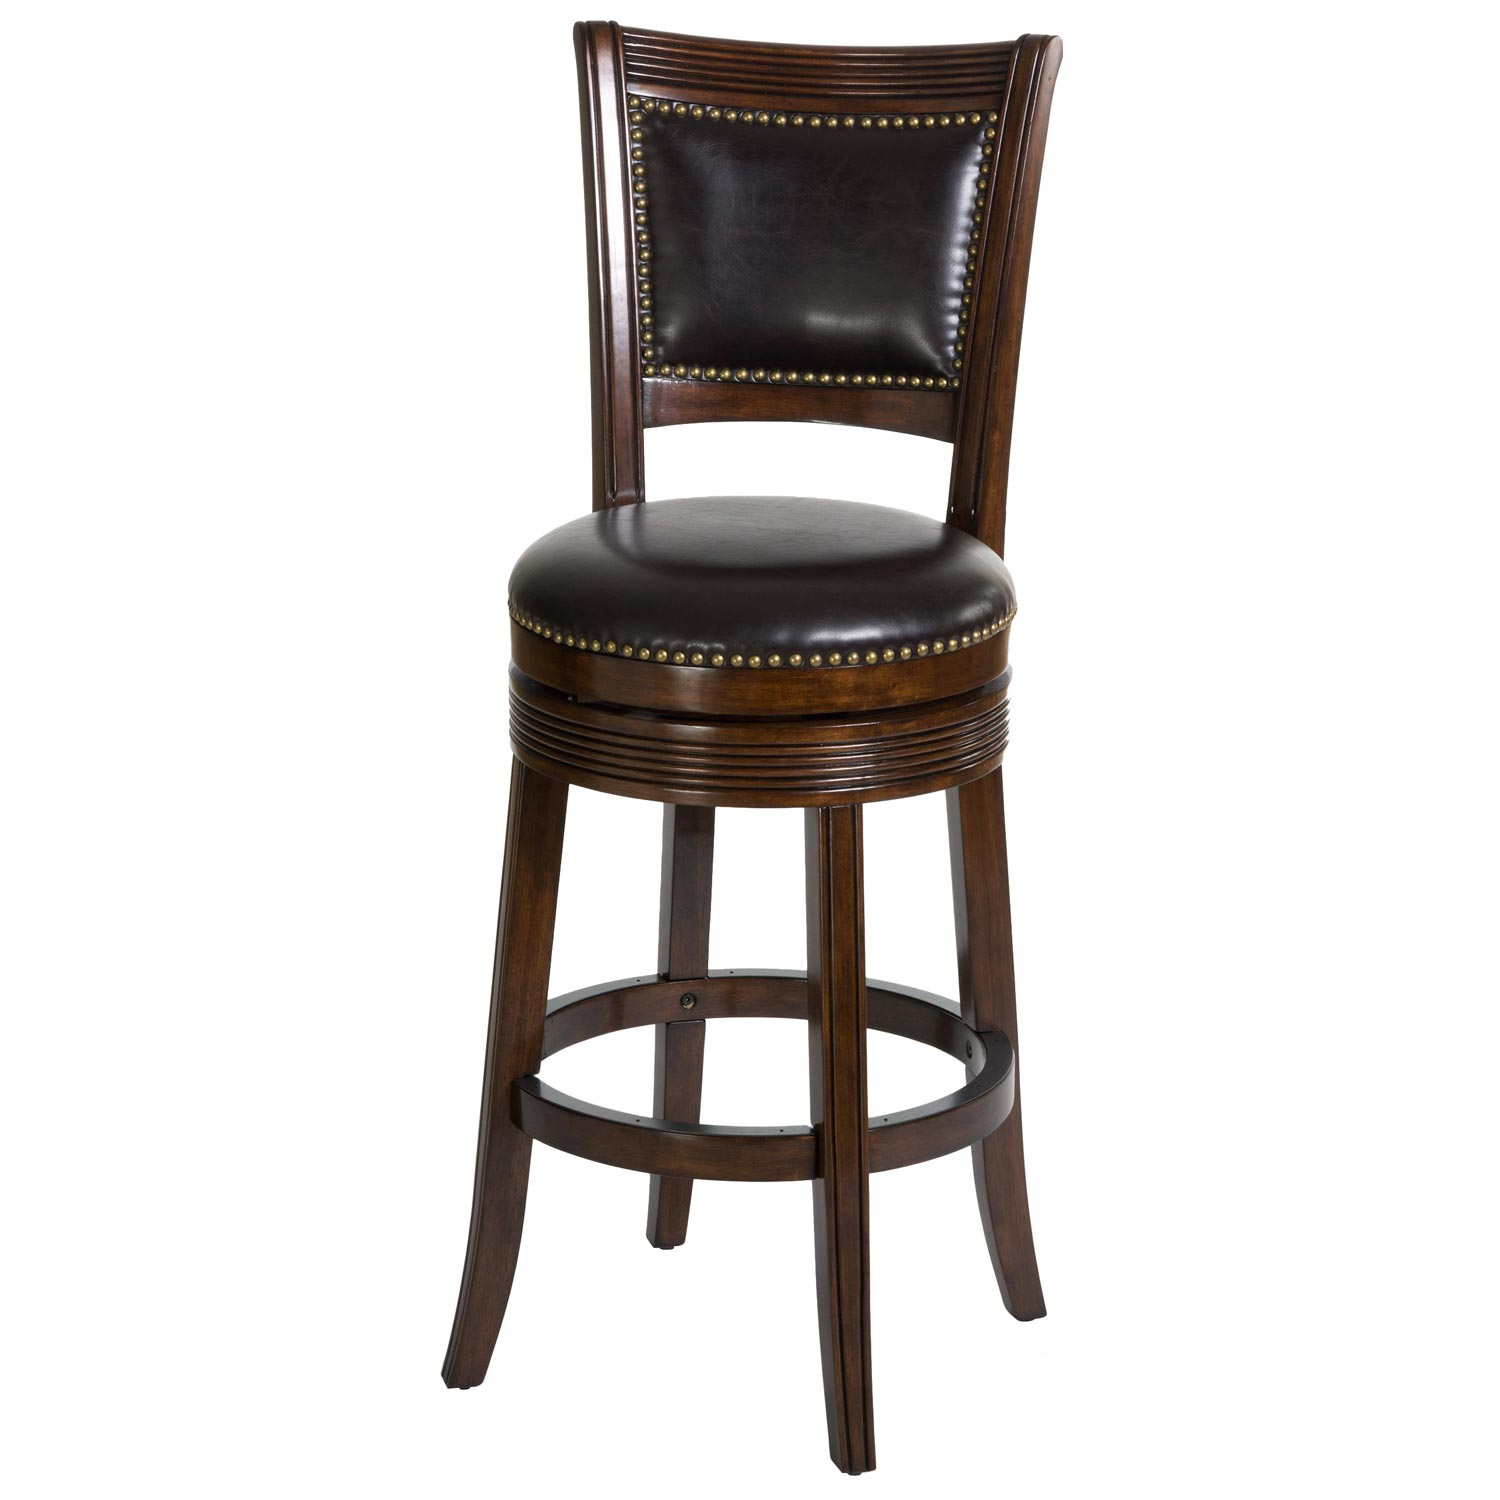 Superb img of Lockefield 30 Wooden Bar Stool Nail Heads Espresso Frame DCG  with #5D4436 color and 1500x1500 pixels